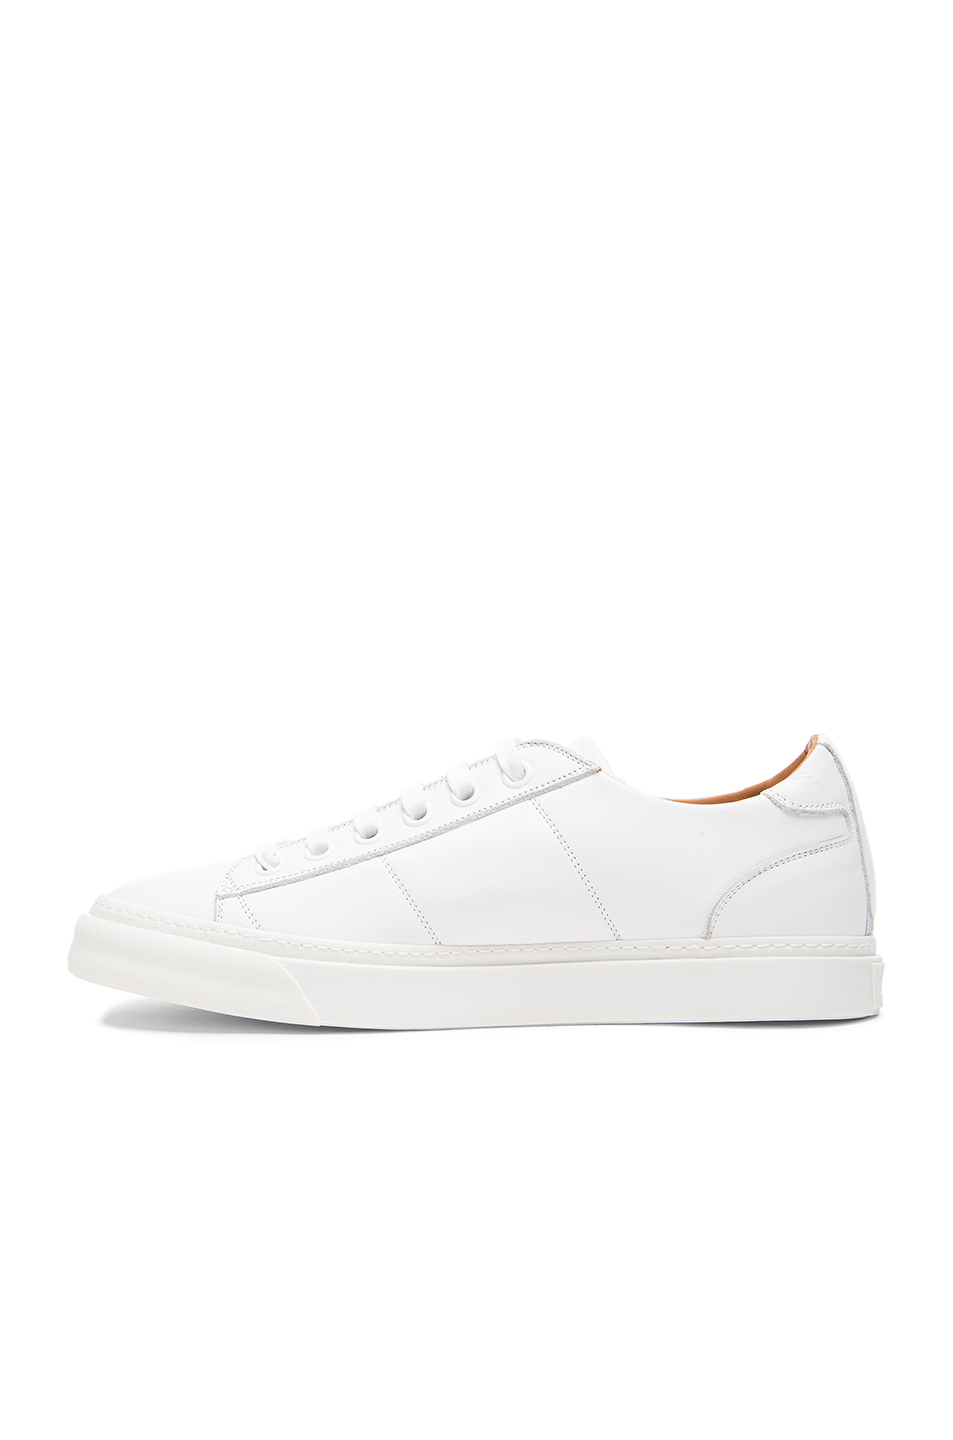 Marc Jacobs Leather Trainers Low Shipping Fee Online 100% Guaranteed Discount Websites Free Shipping Genuine Fake Sale Online SB178eeSVI